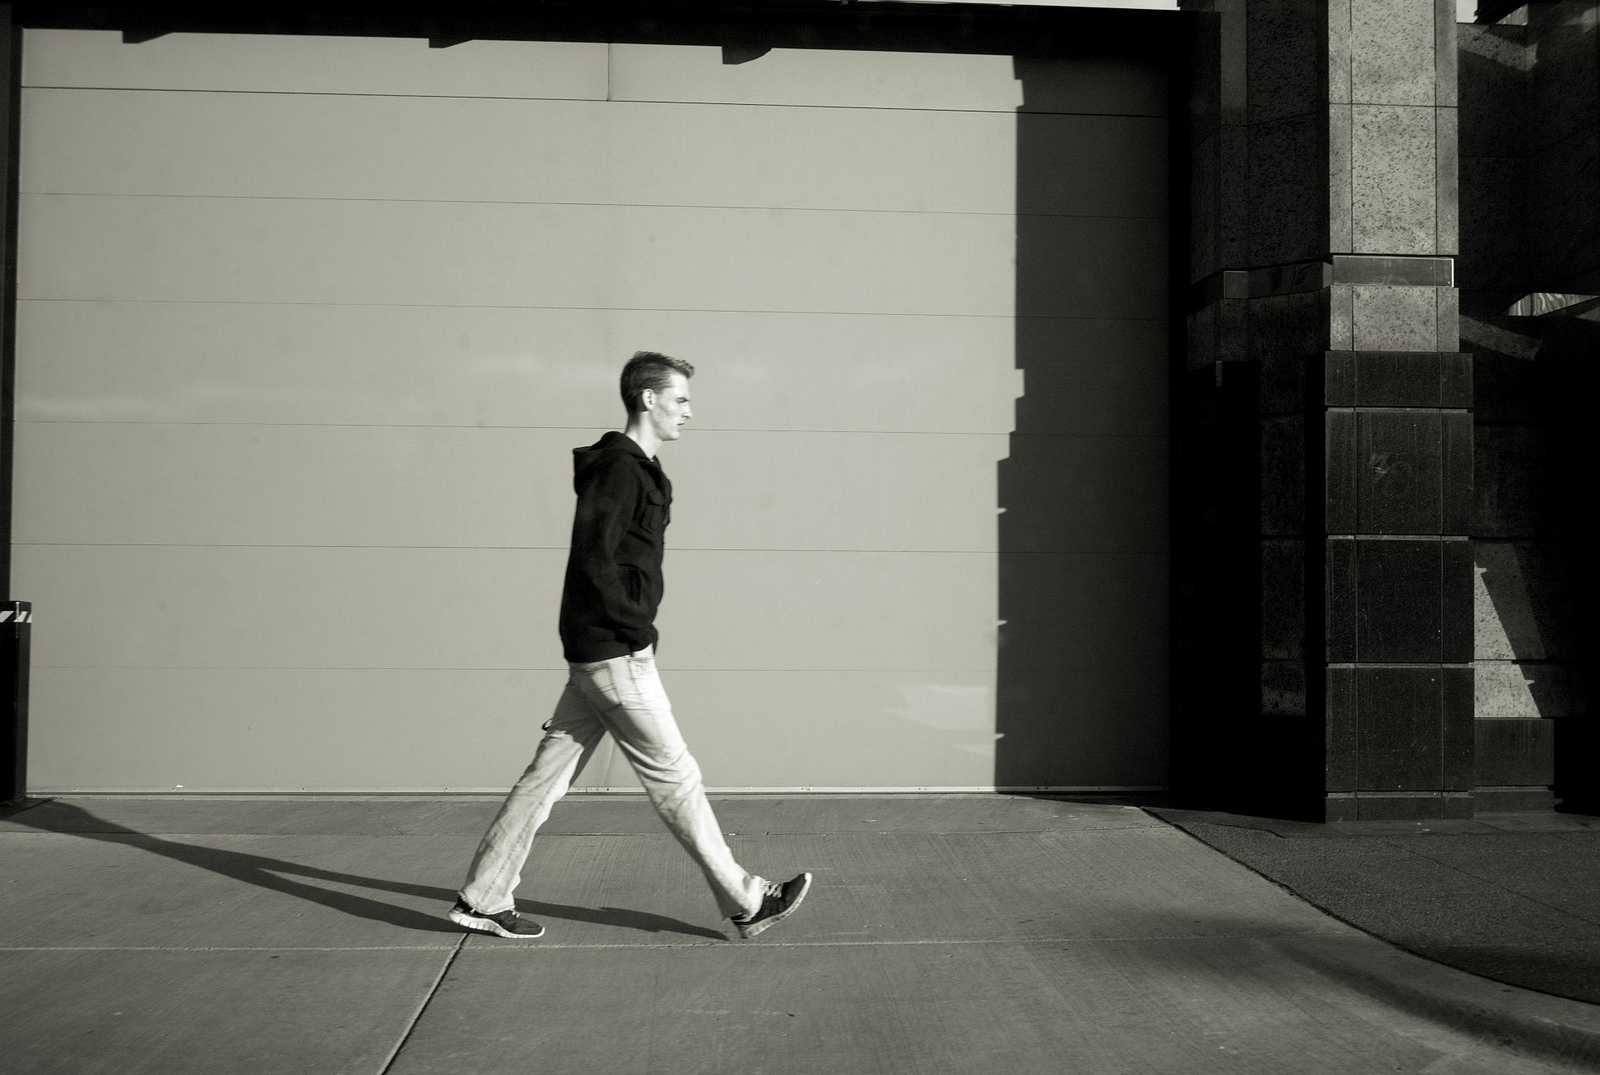 Walking style may indicate aggressive personality